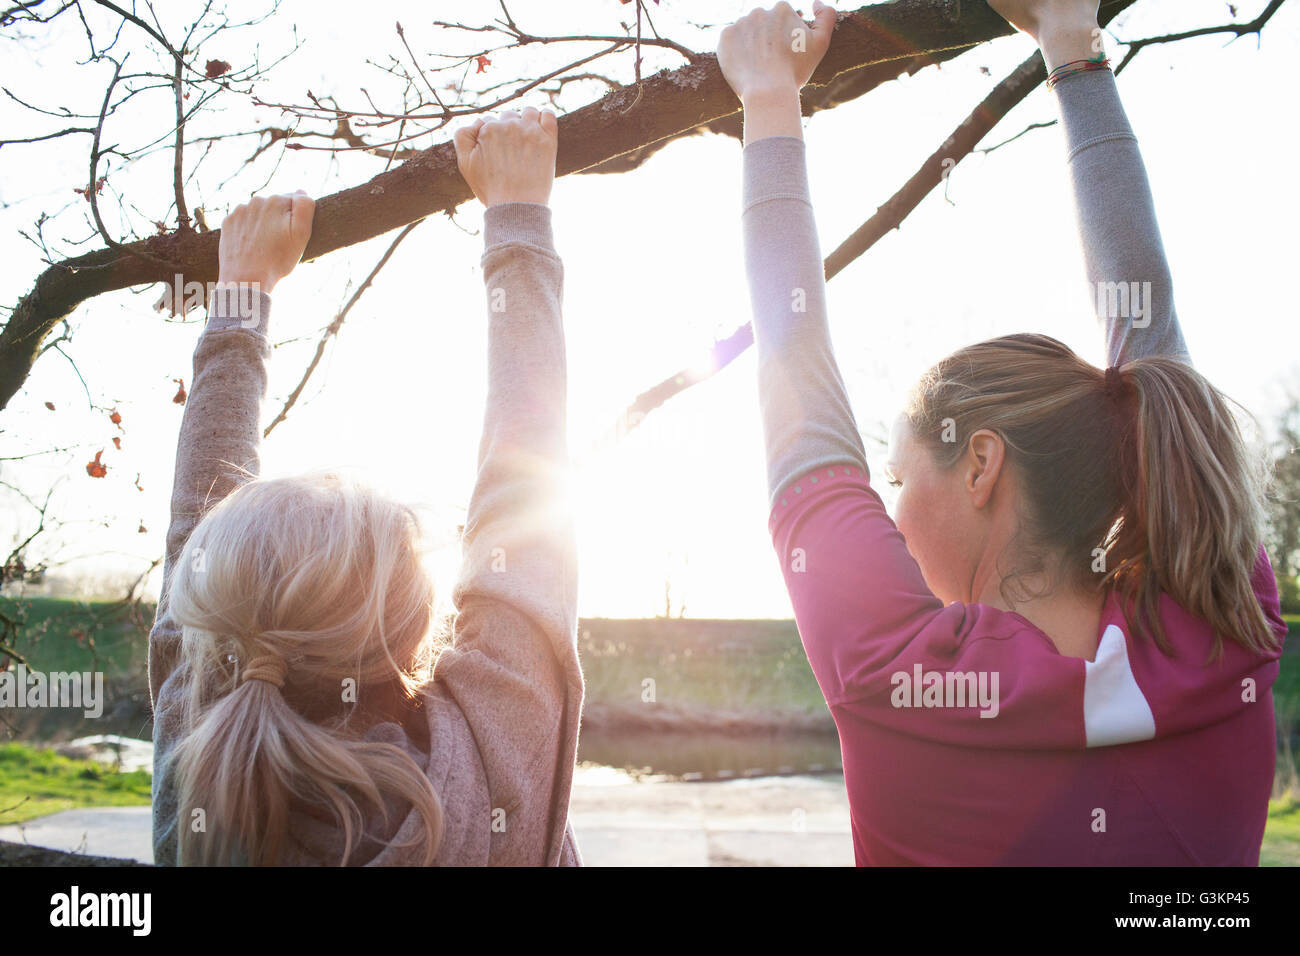 Rear view of women doing chin ups on tree branch - Stock Image